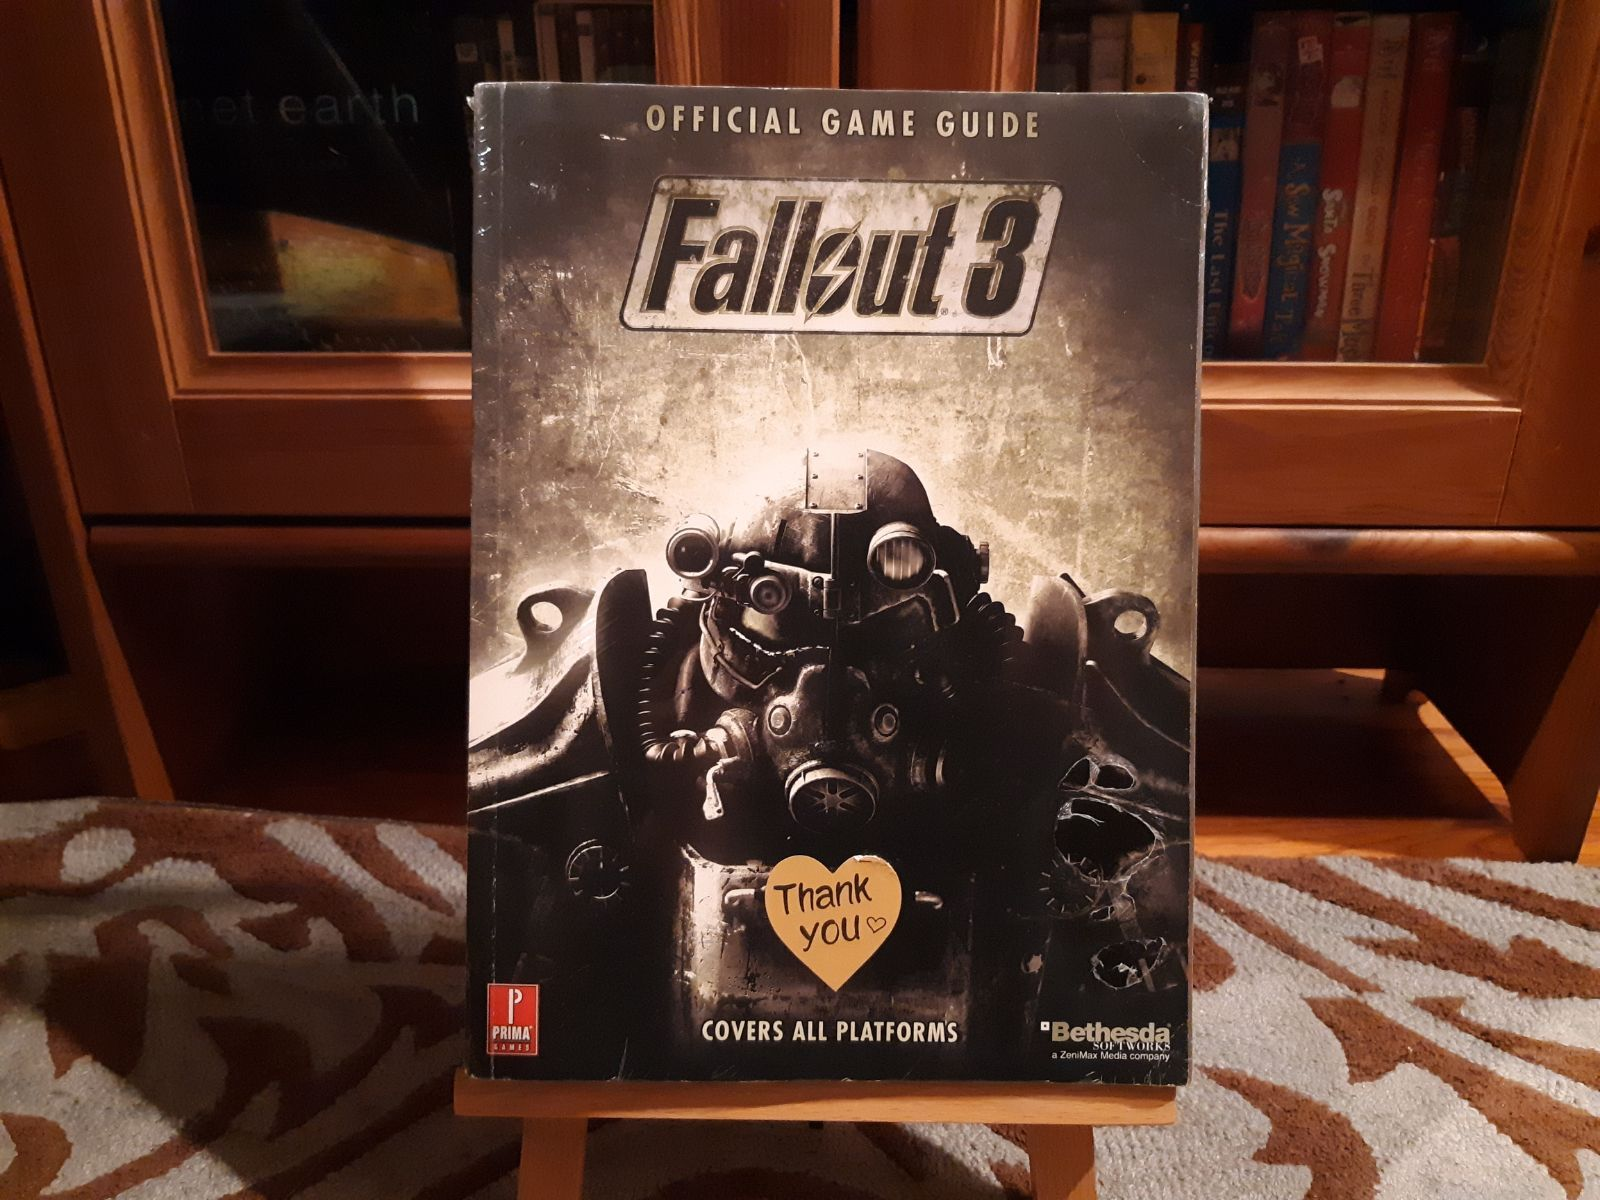 Fallout 3 Official Game Guide Mercari In 2020 Gamecube Game